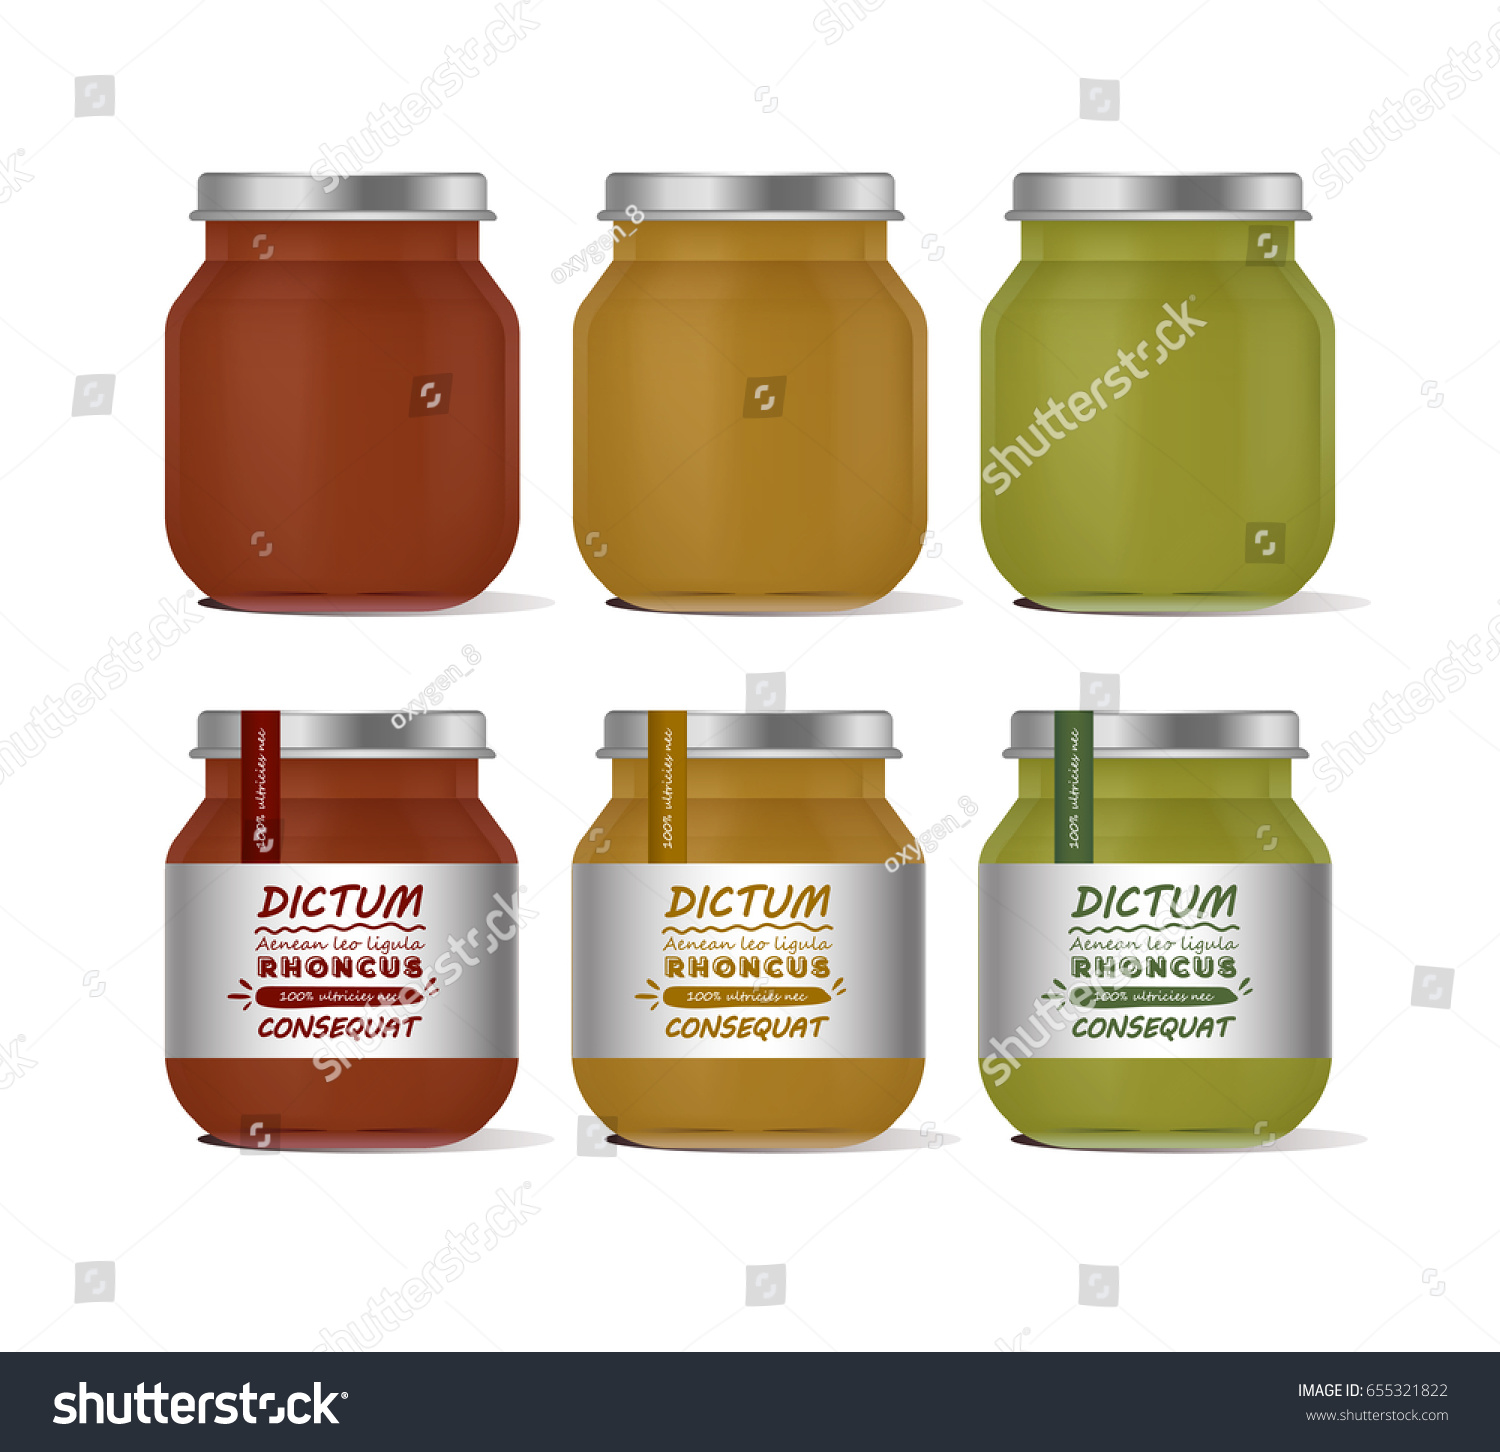 Vector illustration glass jar baby food stock vector for Baby food jar label template